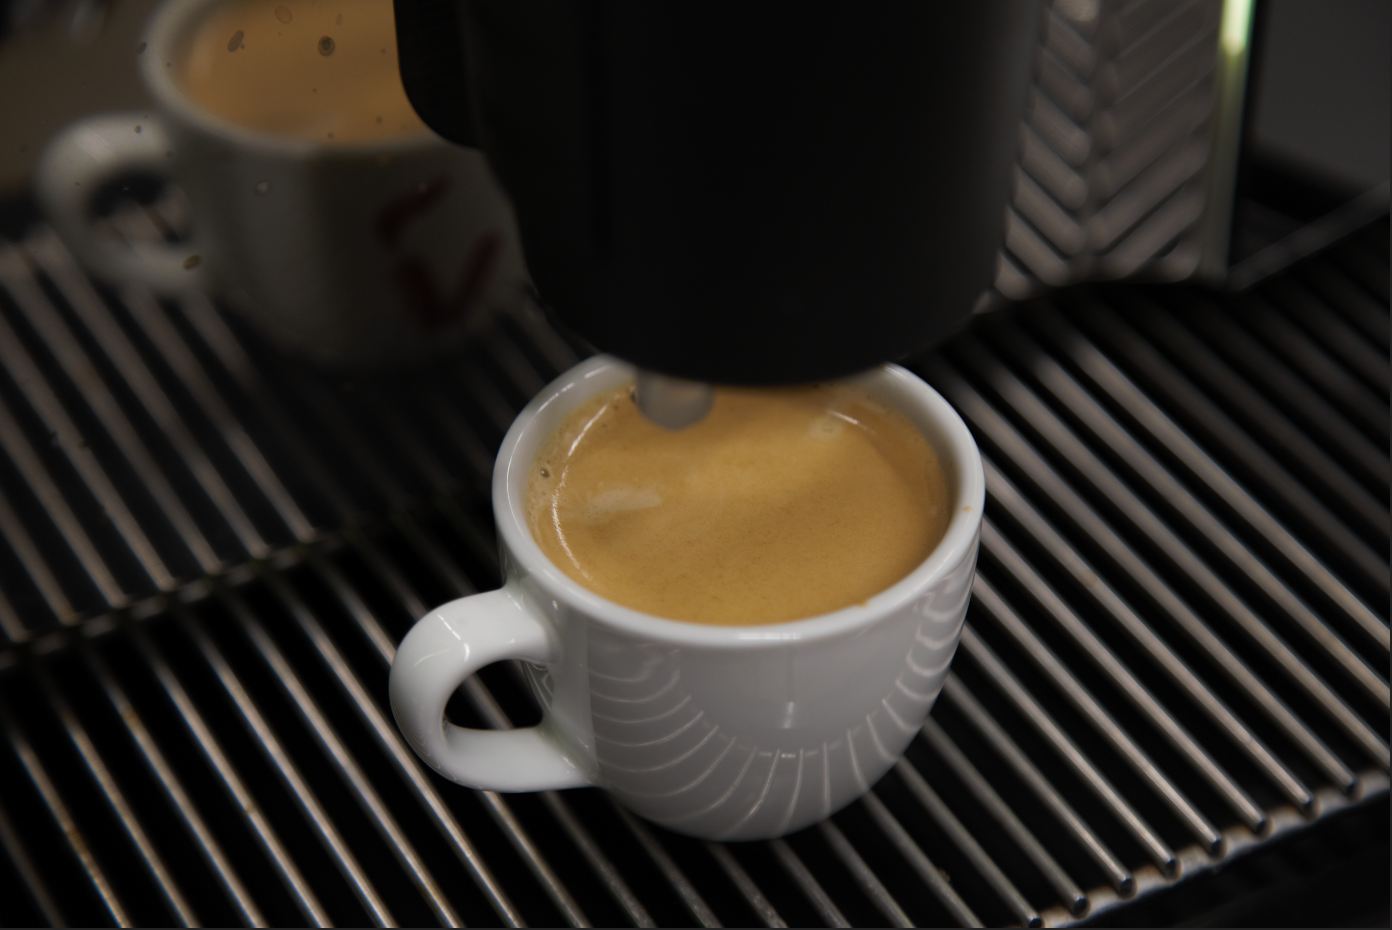 Three pointers for picking the perfect office coffee